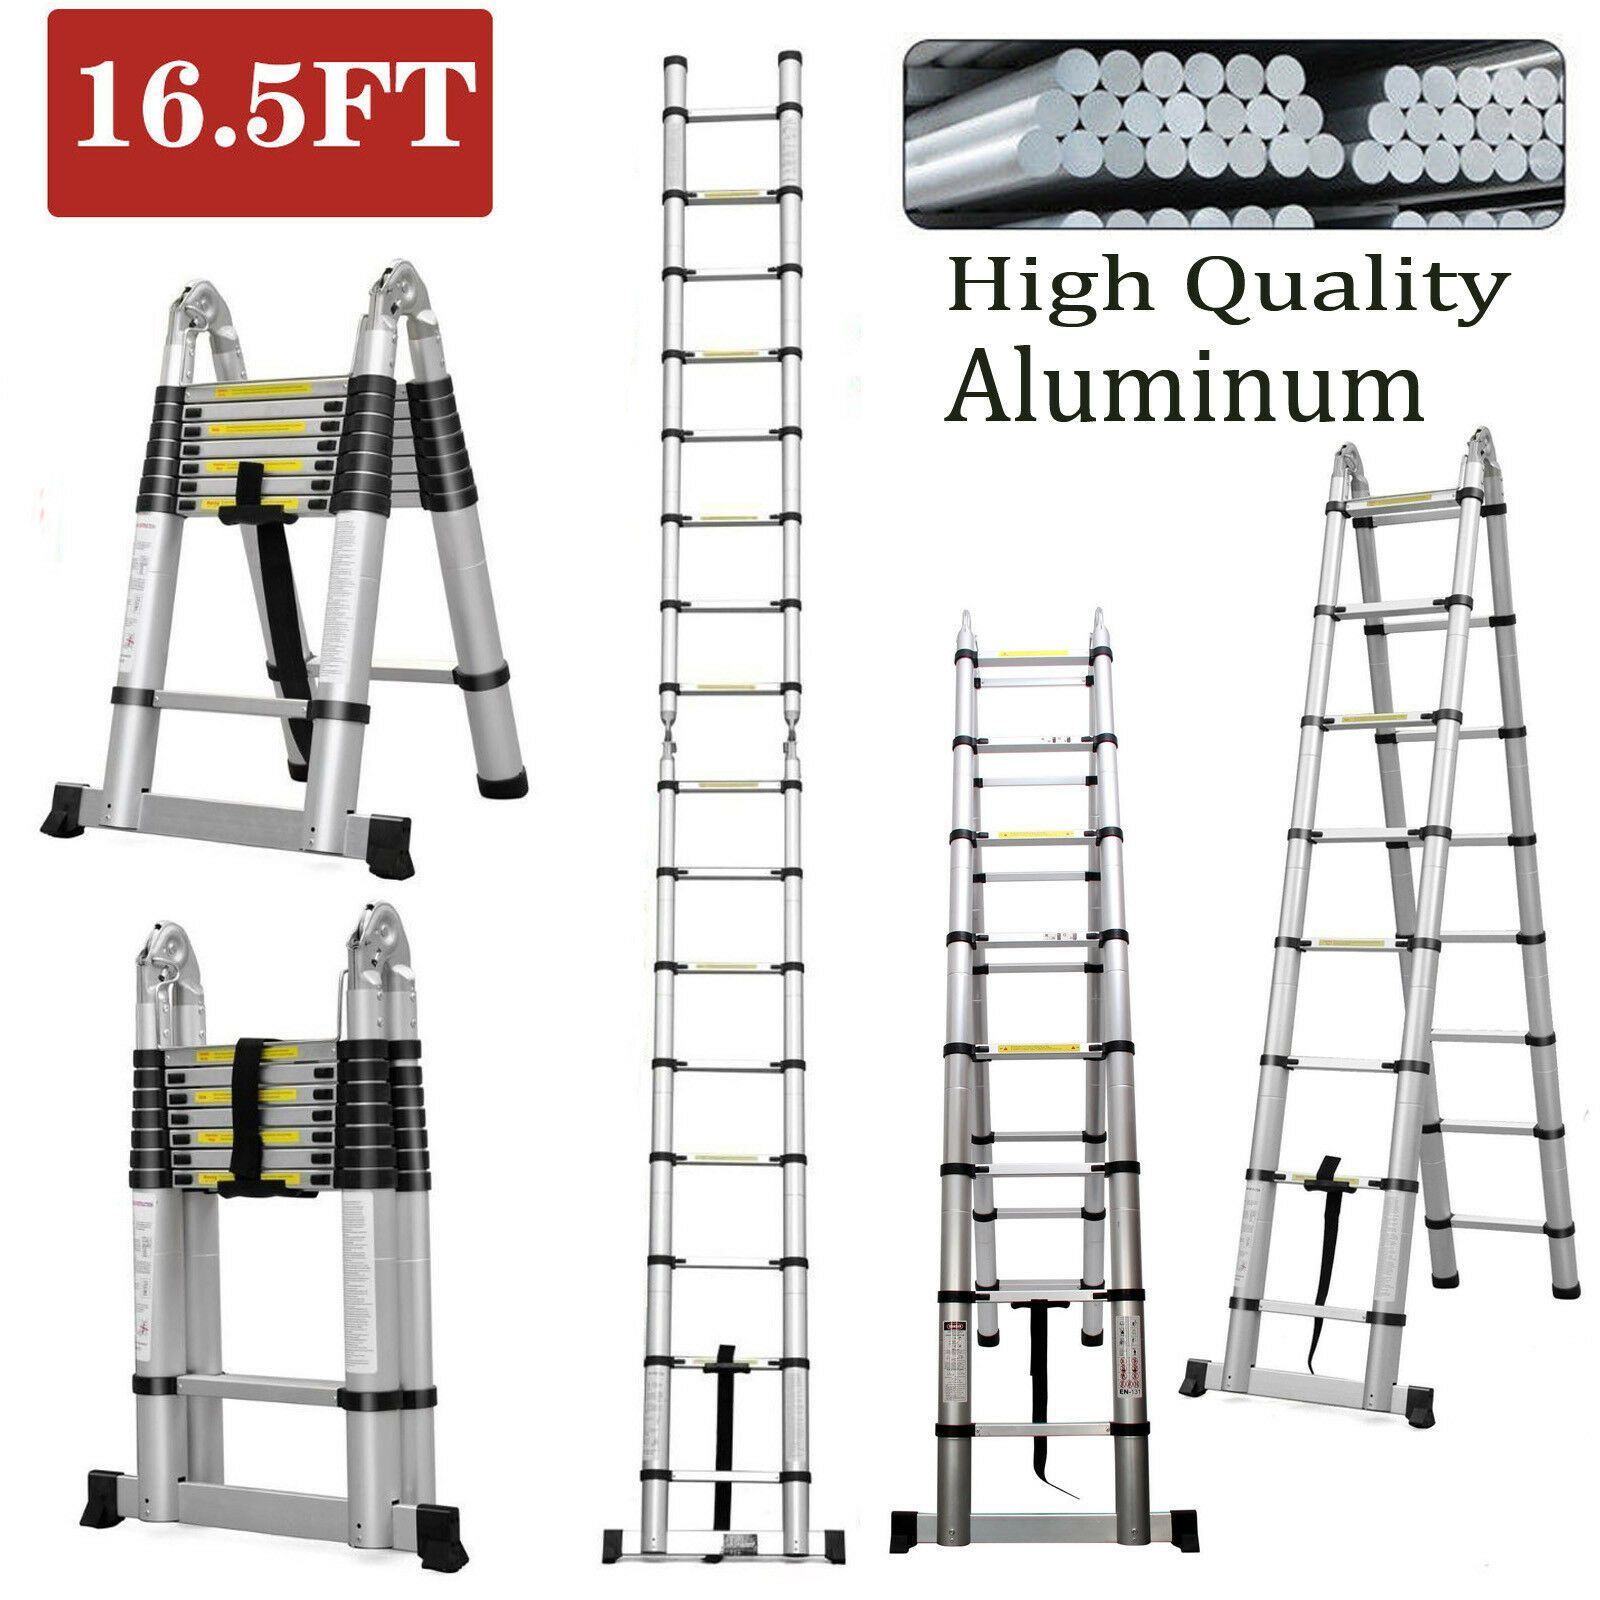 Heavy Duty 16 5 Feet 5m Aluminum Telescopic Extension Step Ladder Multi Purpose Ladder Decor Ladderdecor In 2020 Step Ladders Folding Ladder Telescopic Ladder